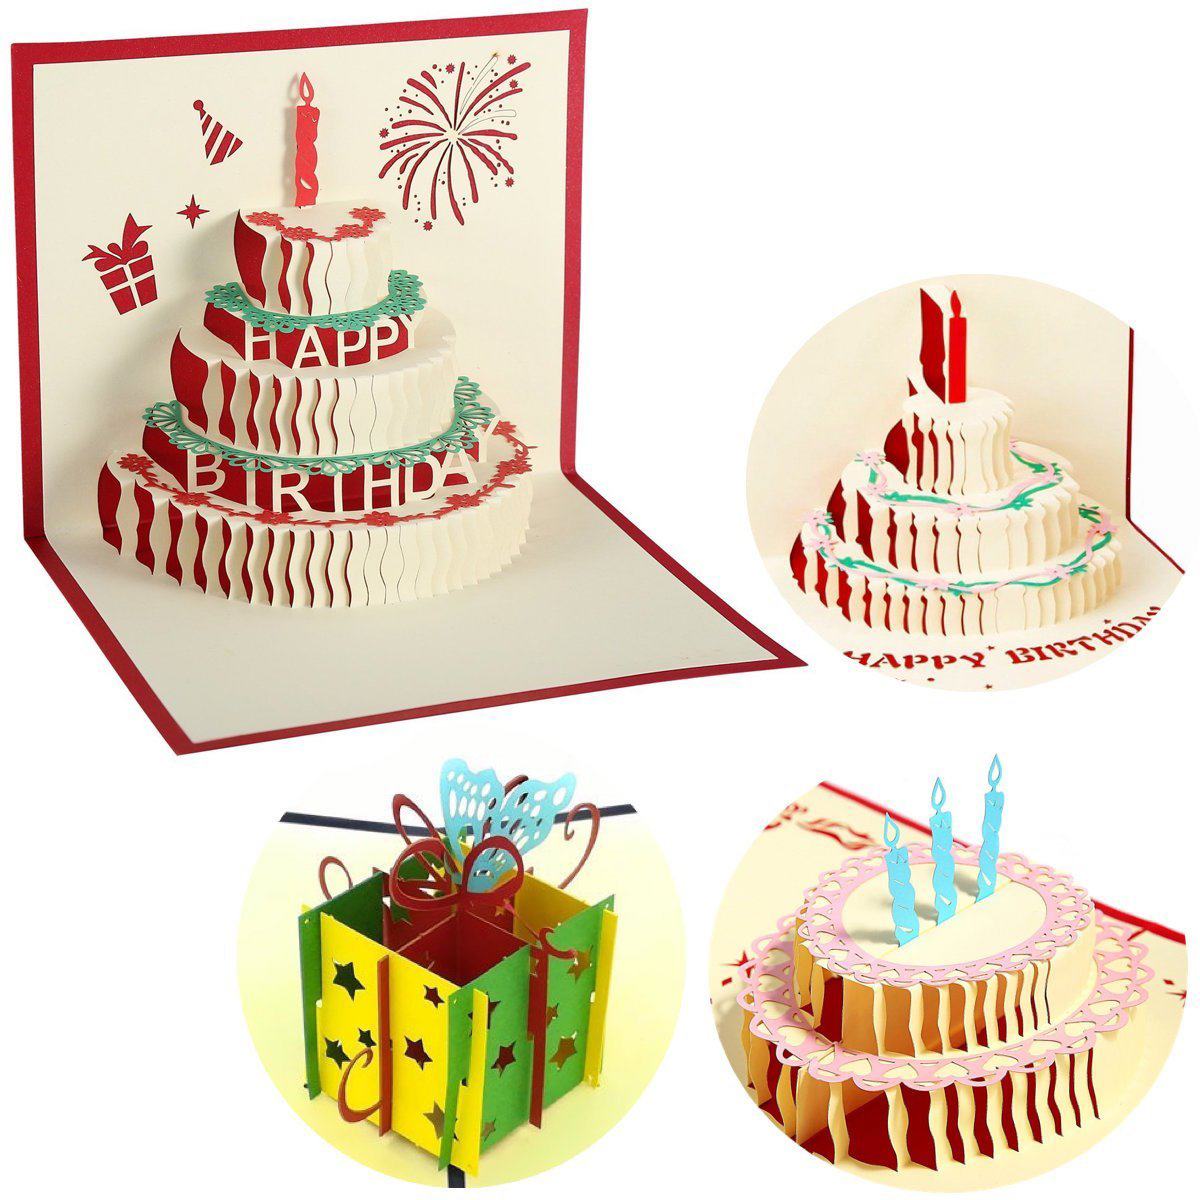 Aliexpress.com : Buy 4 Pcs 3D Pop Up Birthday Cards Happy